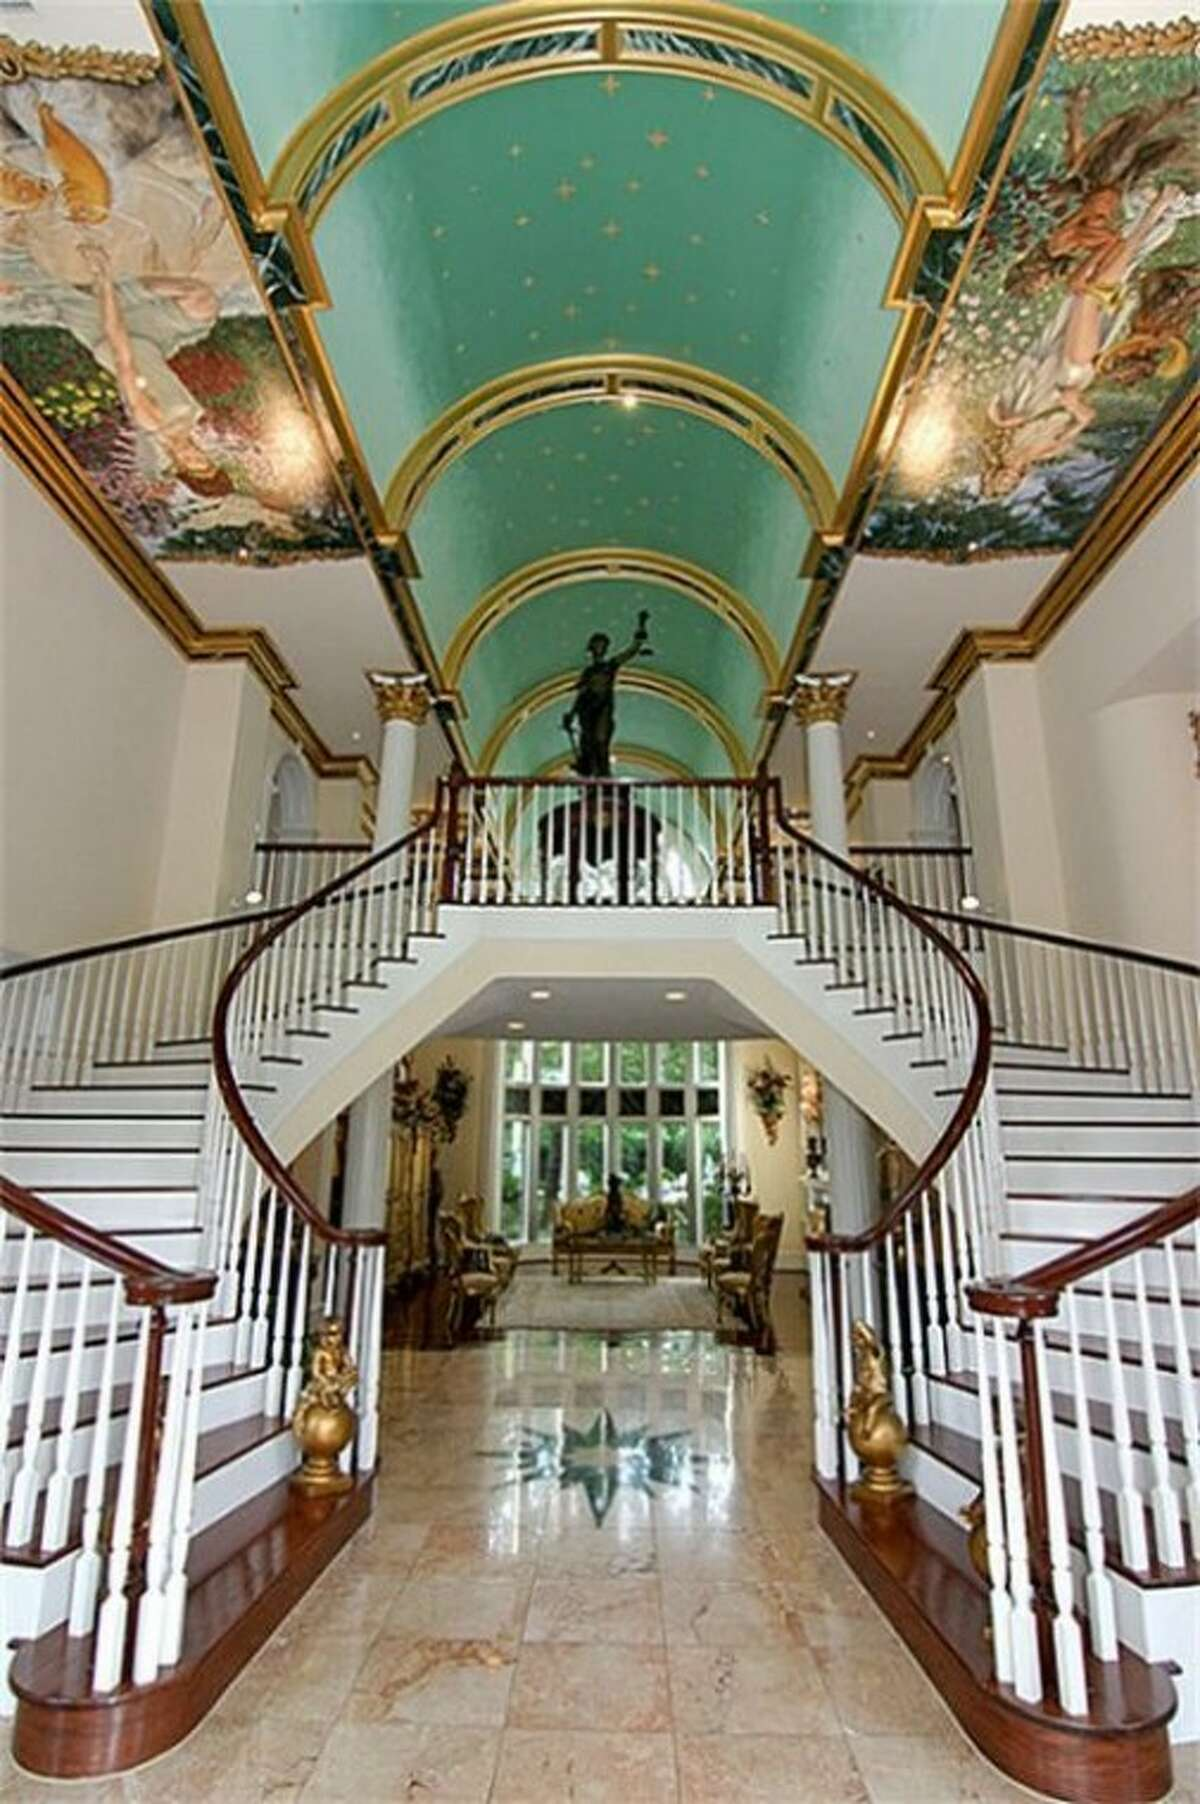 Guests are greeted by a grand foyer at The Blair House in Grogan's Point.